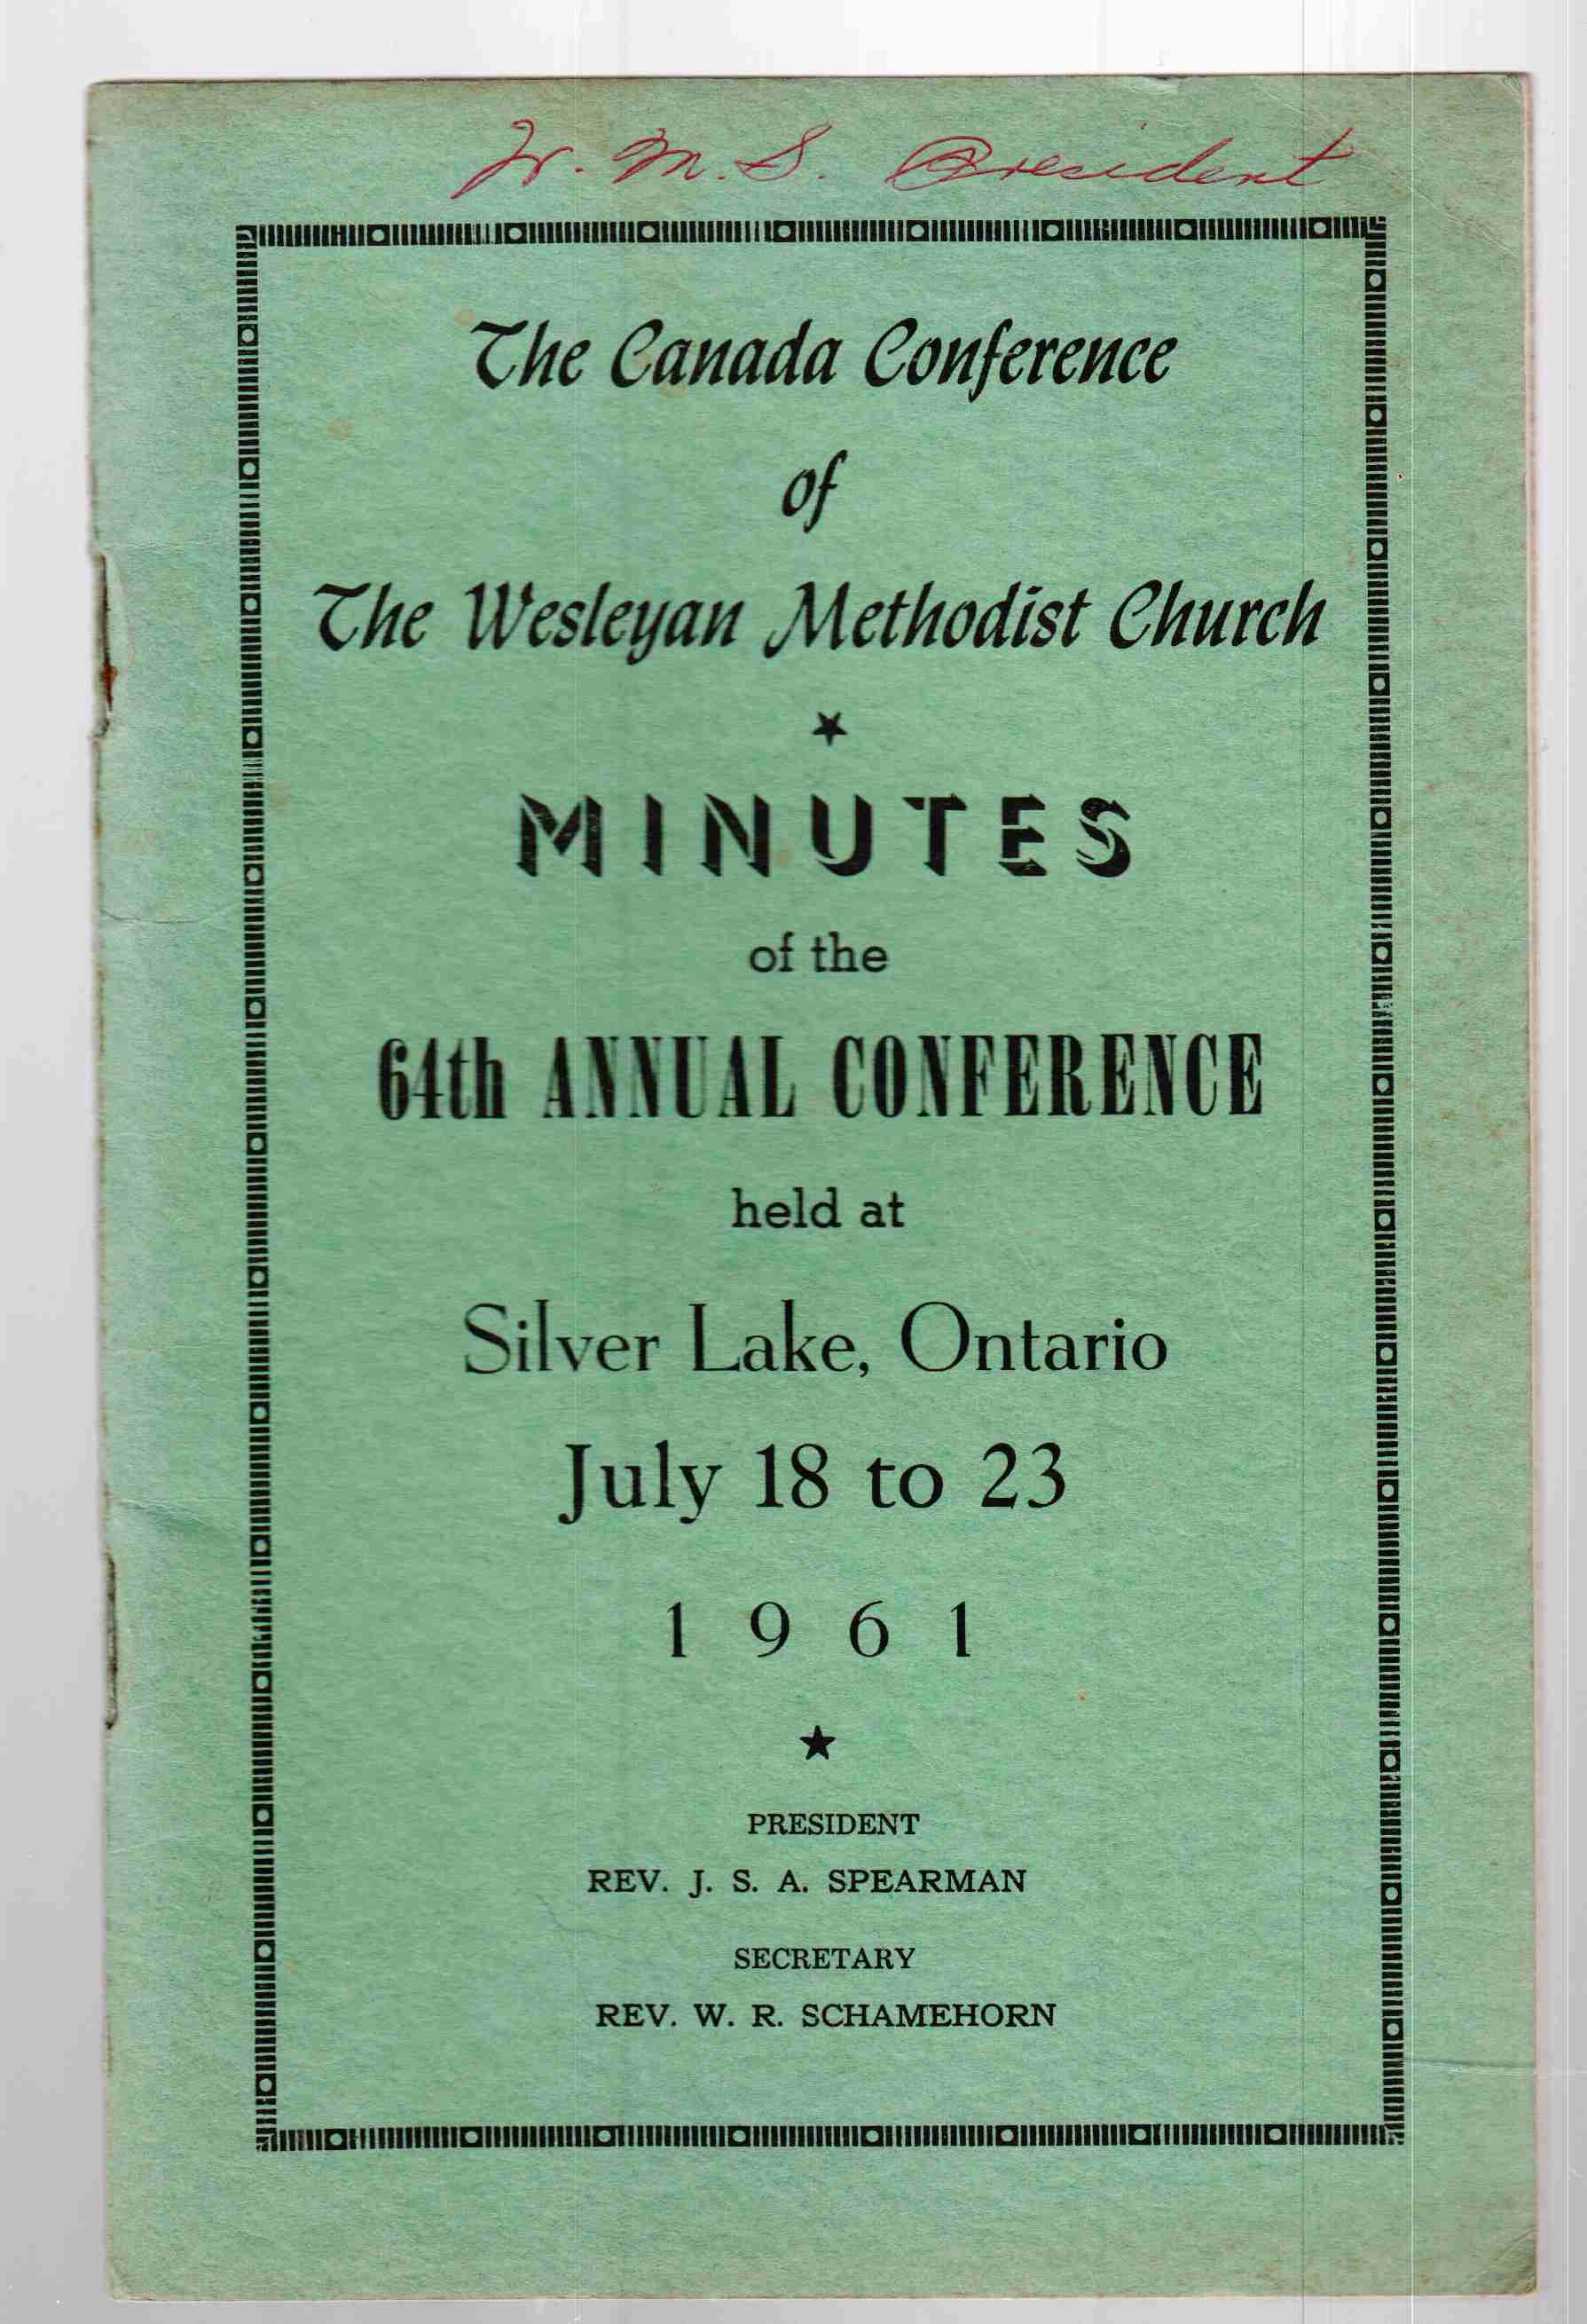 Image for The Canada Conference of the Wesleyan Methodist Church Minutes of the 64th Annual Conference Held At Silver Lake, Ontario July 18 to 23, 1961